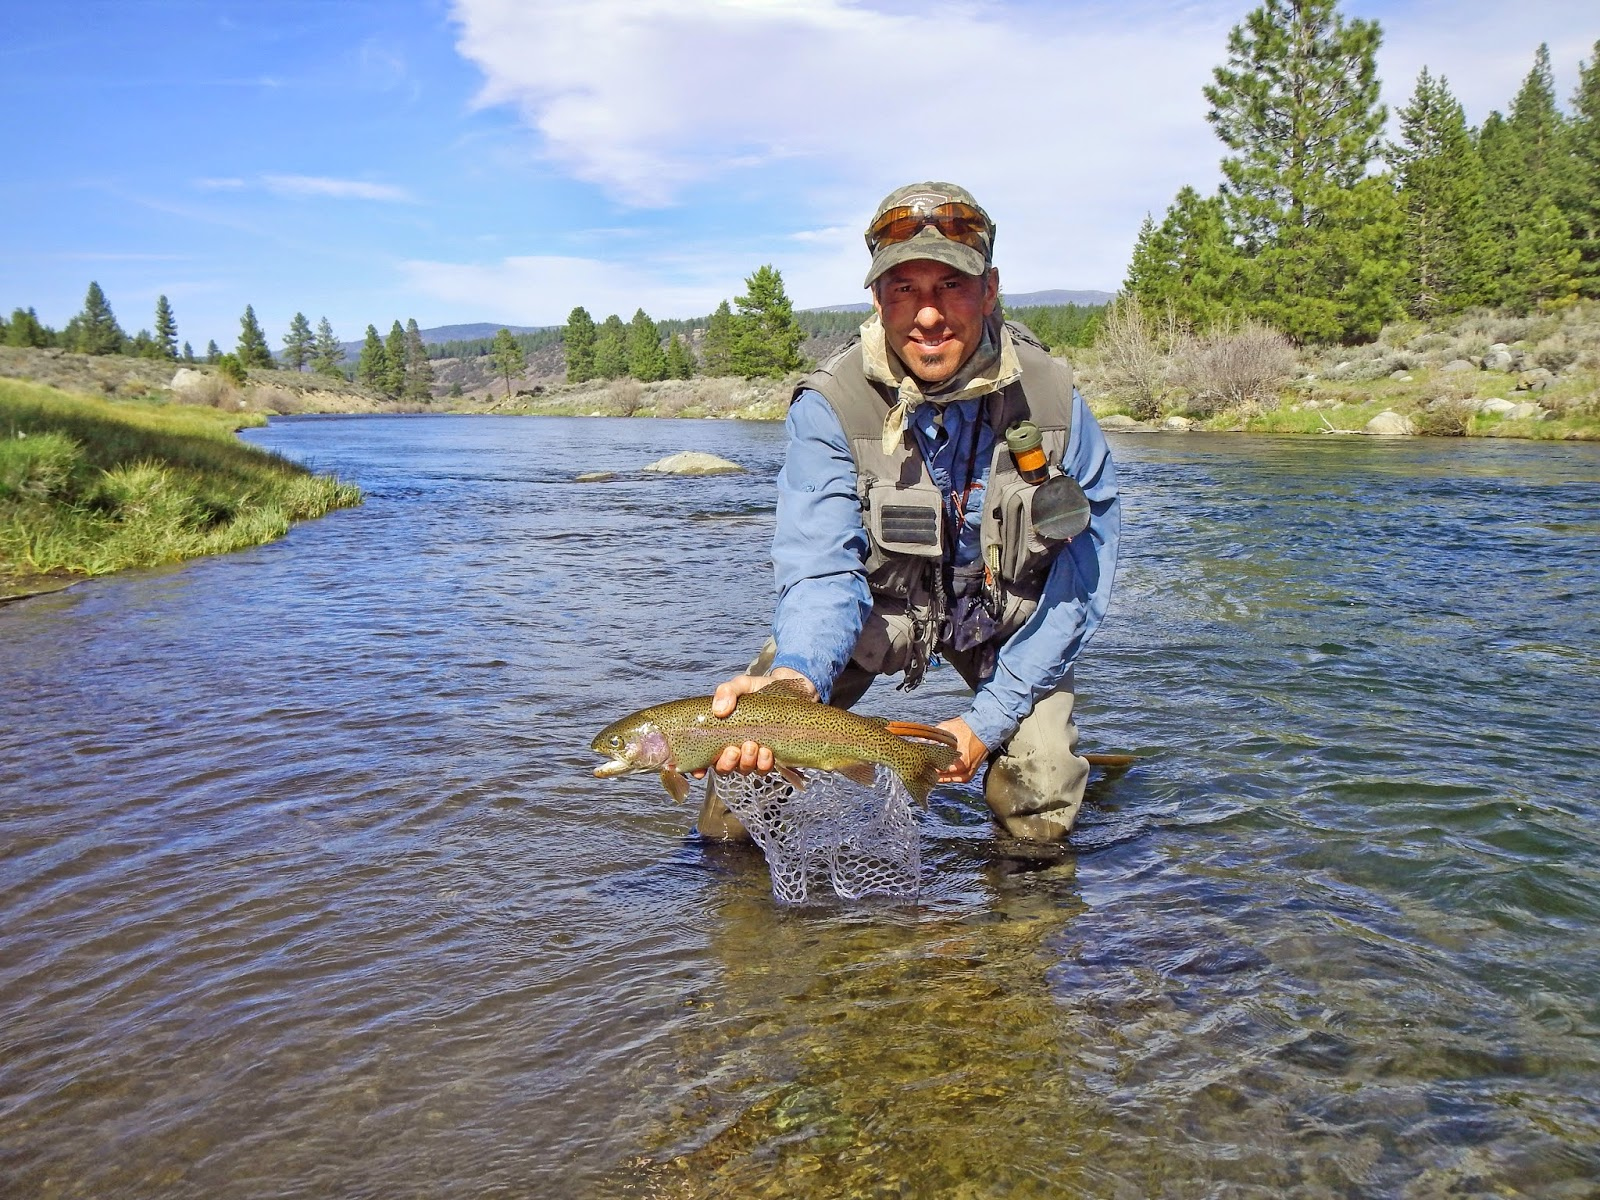 Jon baiocchi fly fishing news april 2015 for Jon b fishing